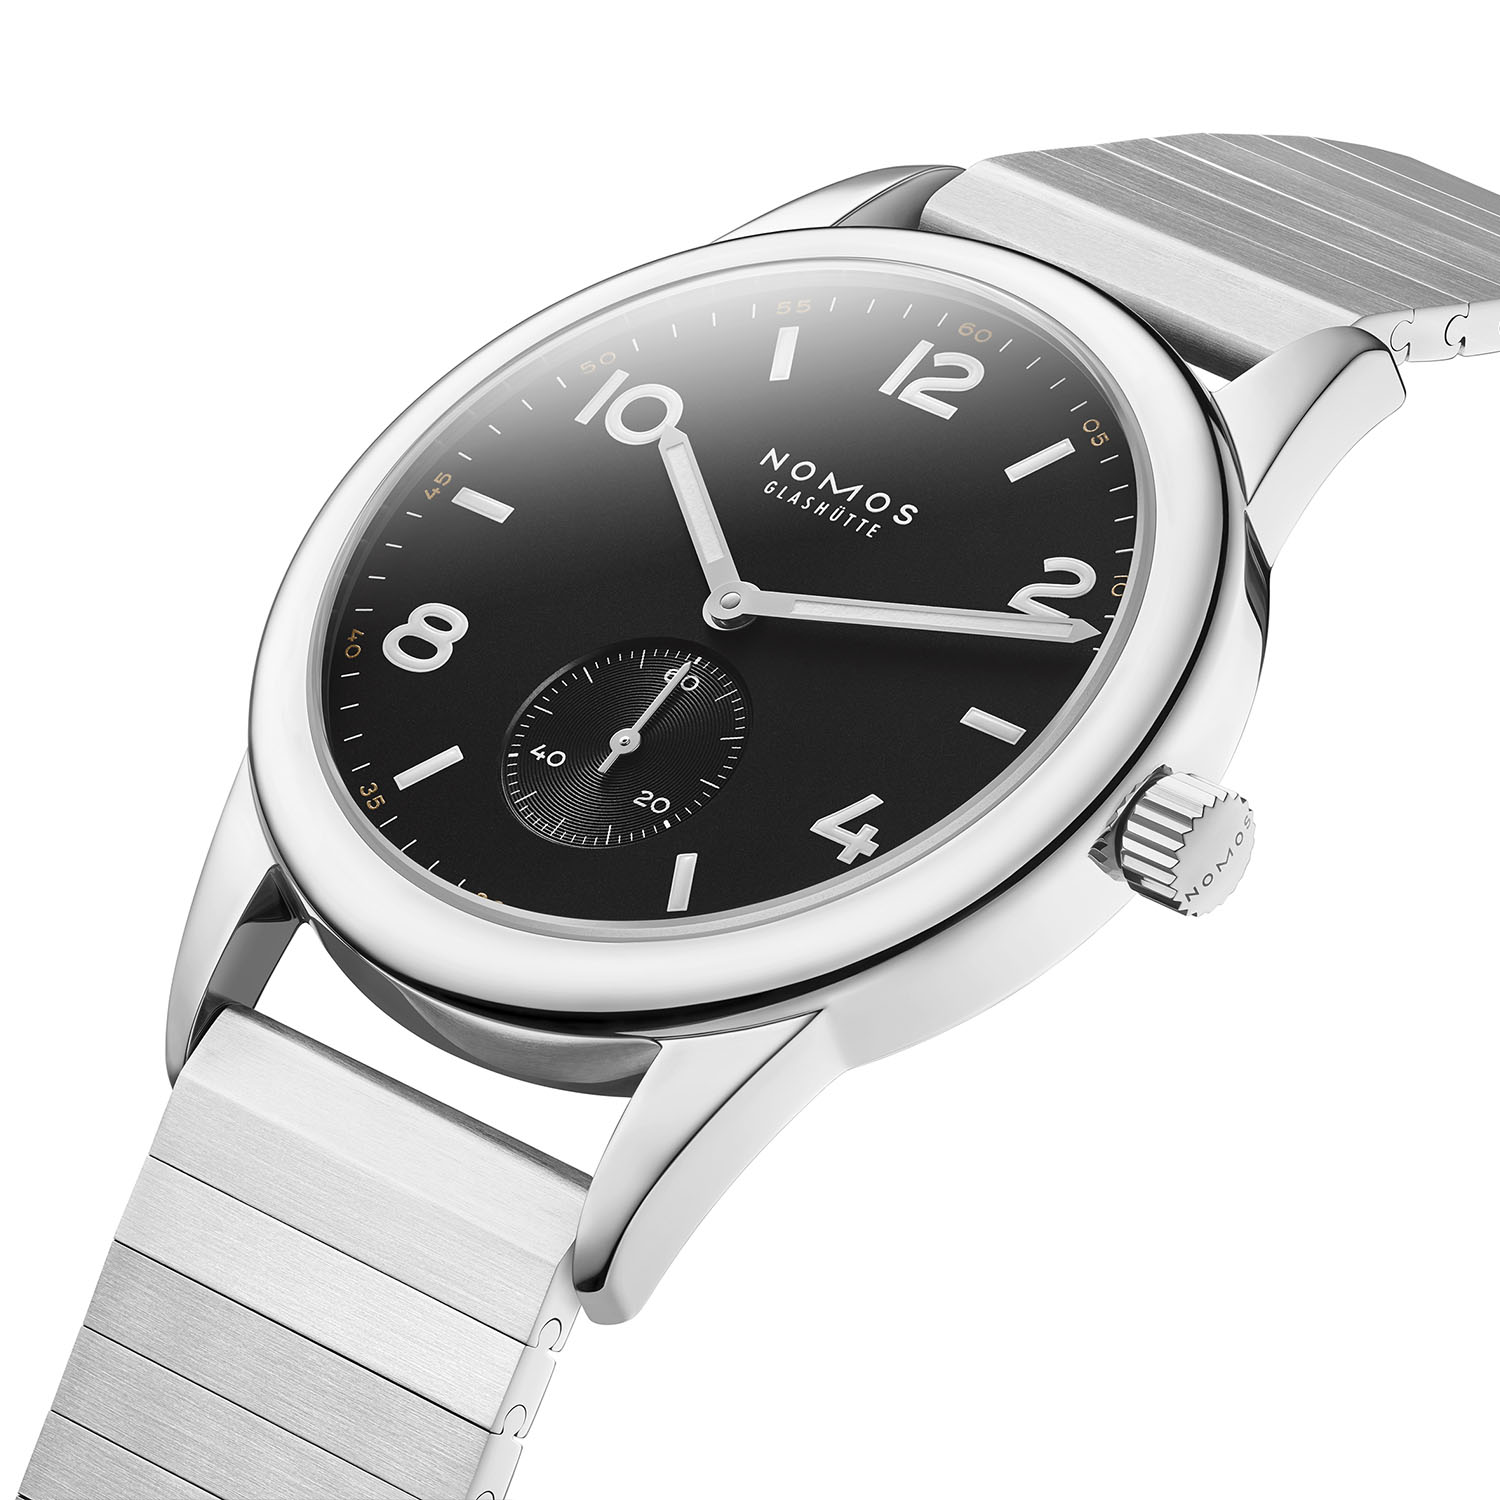 Nomos Club Automatic 175th anniversary limited editions - 8